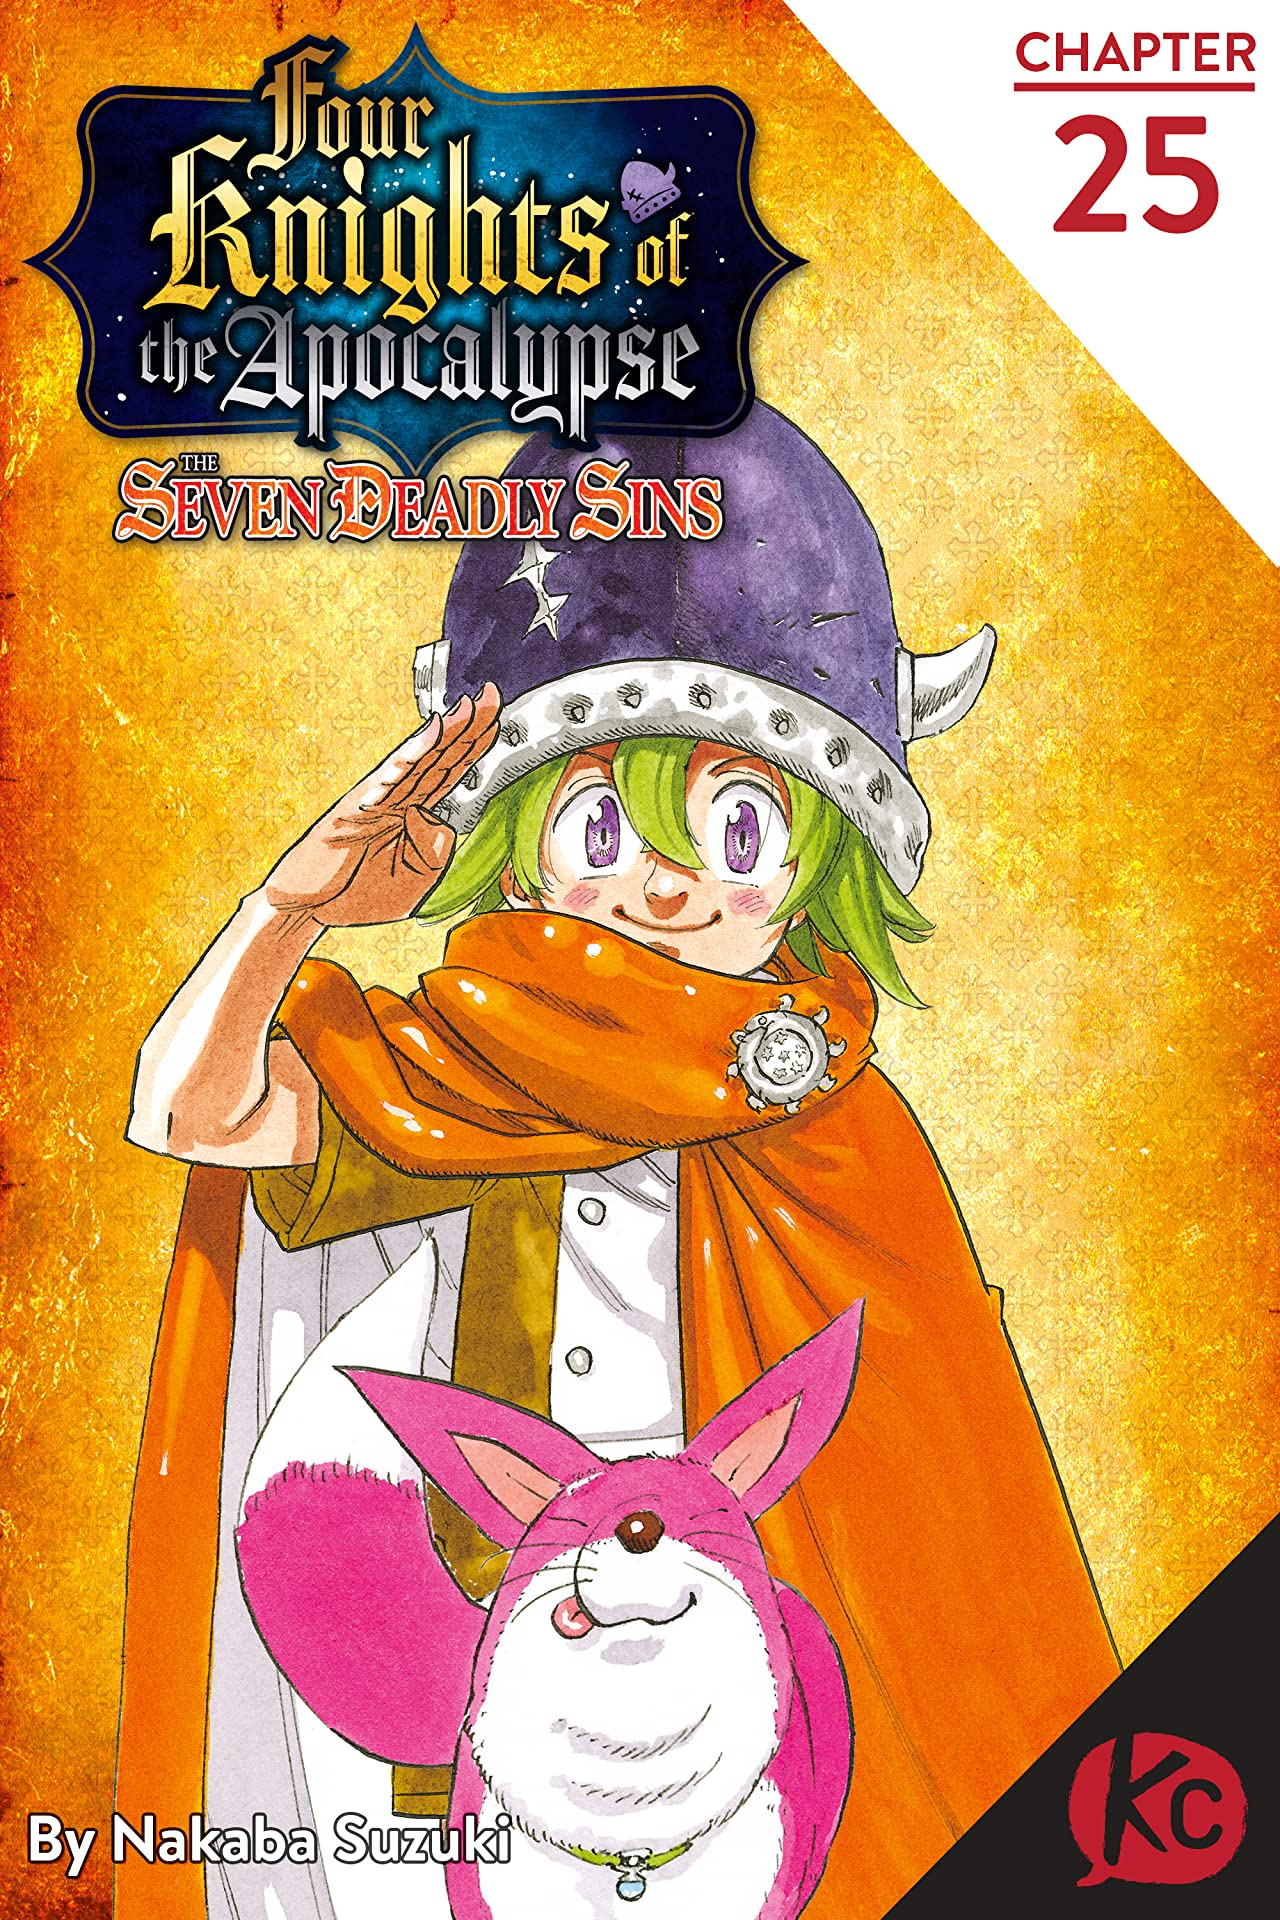 The Seven Deadly Sins: Four Knights of the Apocalypse #25